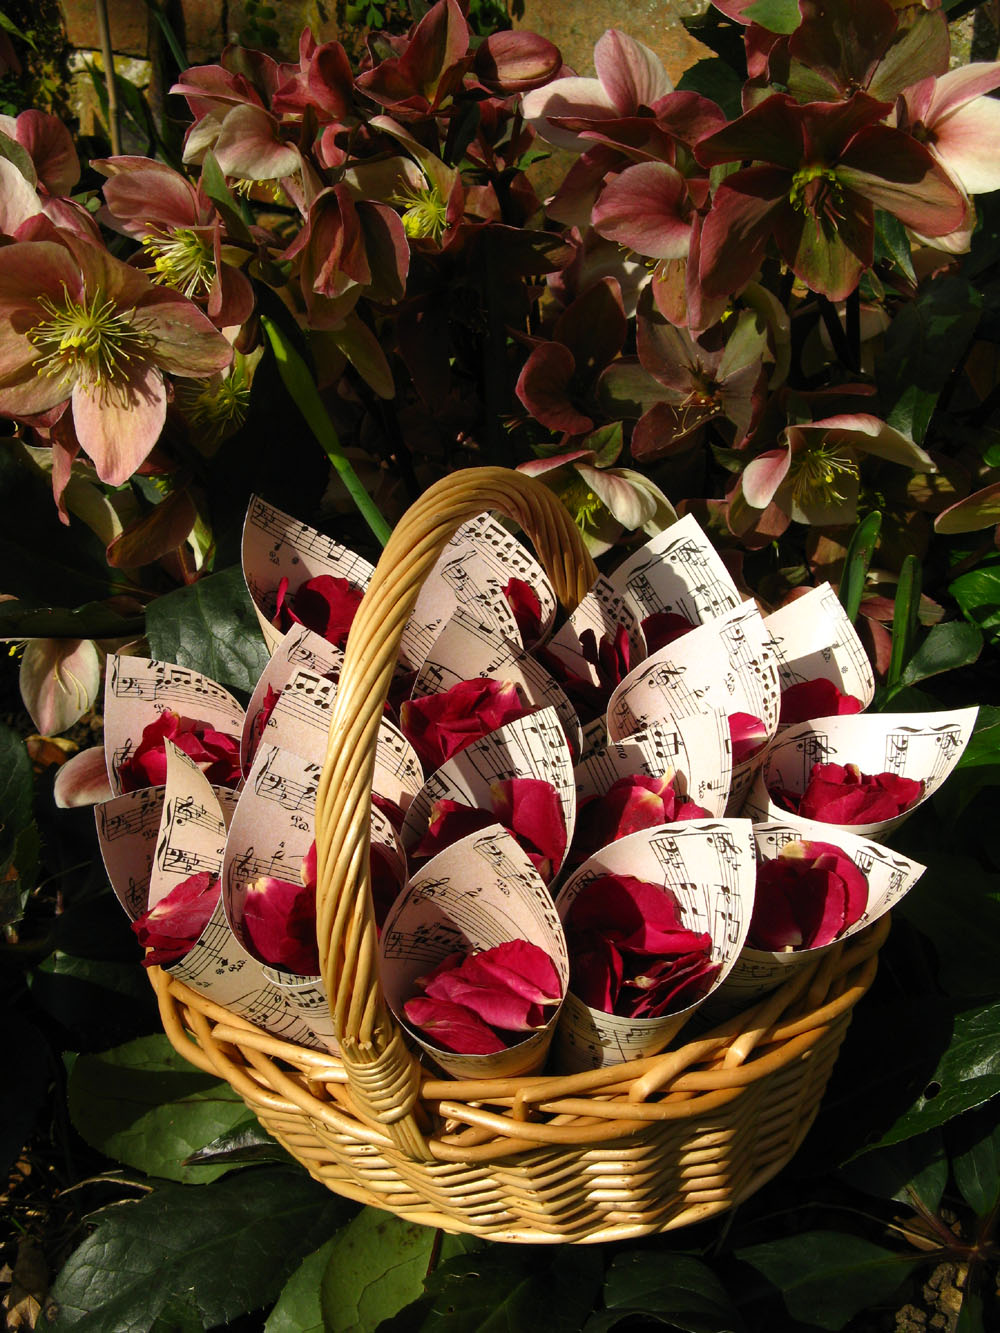 Flower Girl Baskets - merlot rose petals in music paper confetti cones